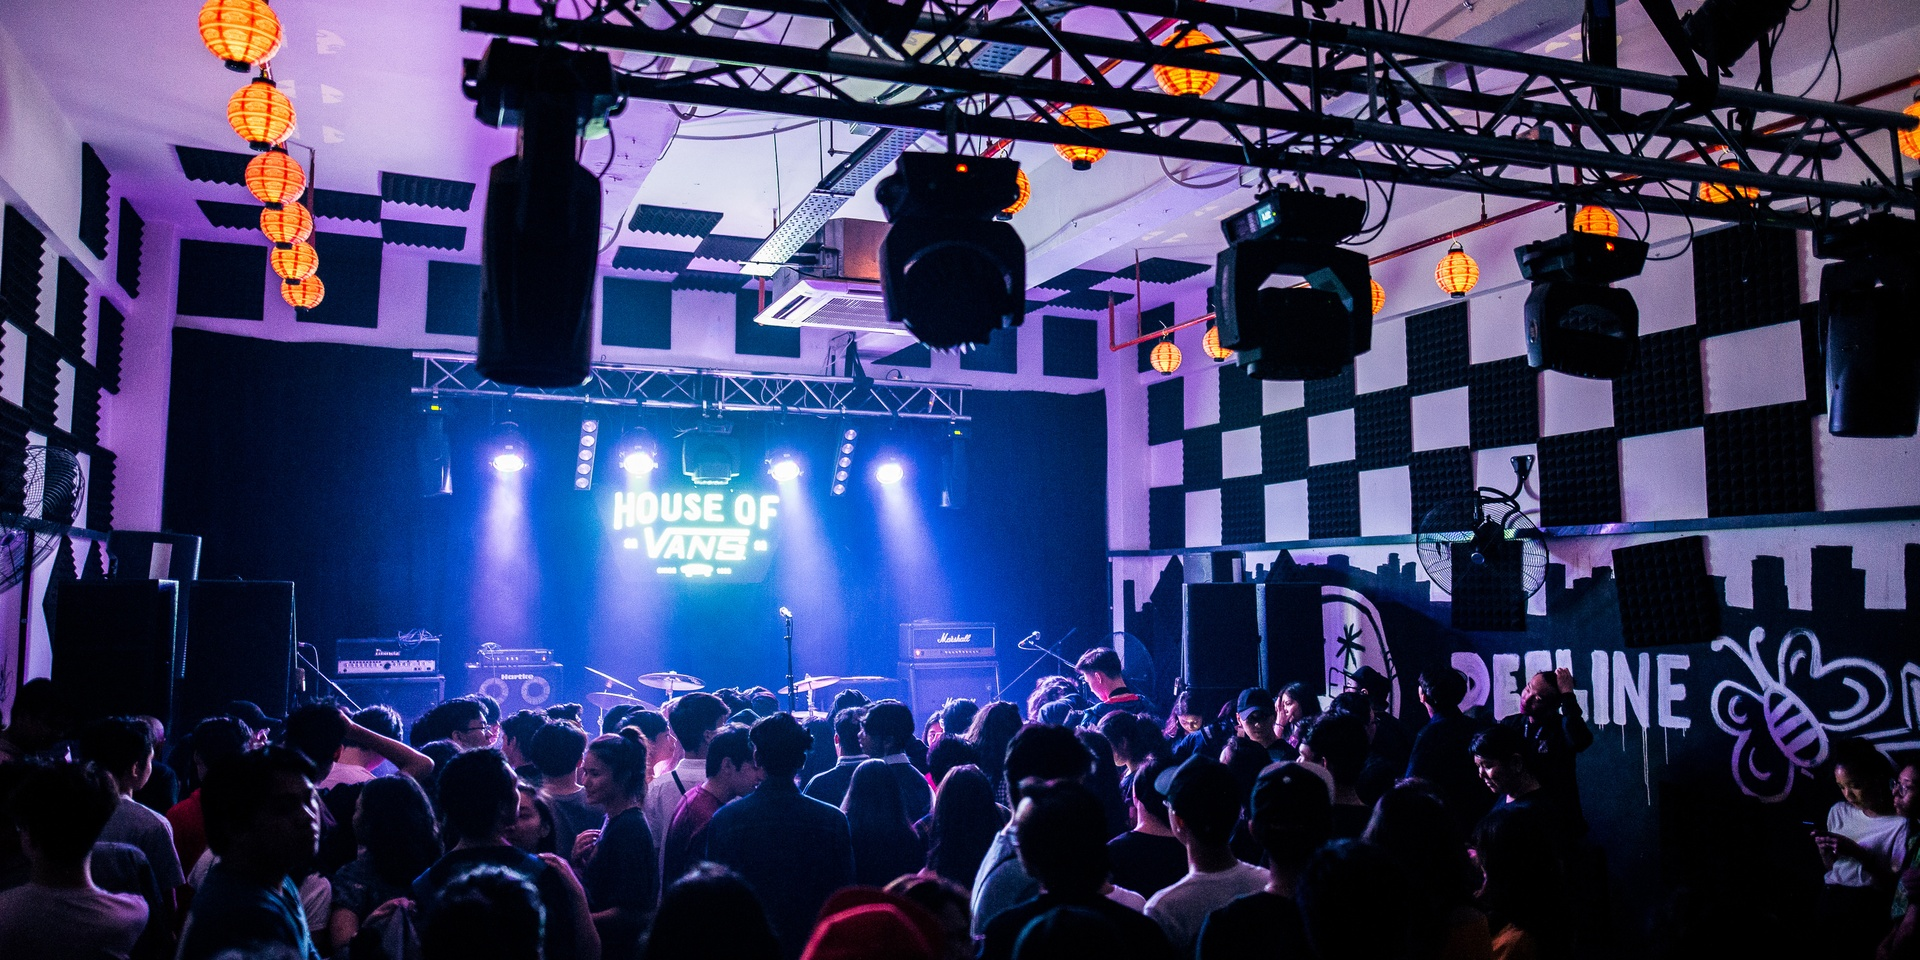 Vans Musicians Wanted Singapore 2019 opens for submissions on 14 June